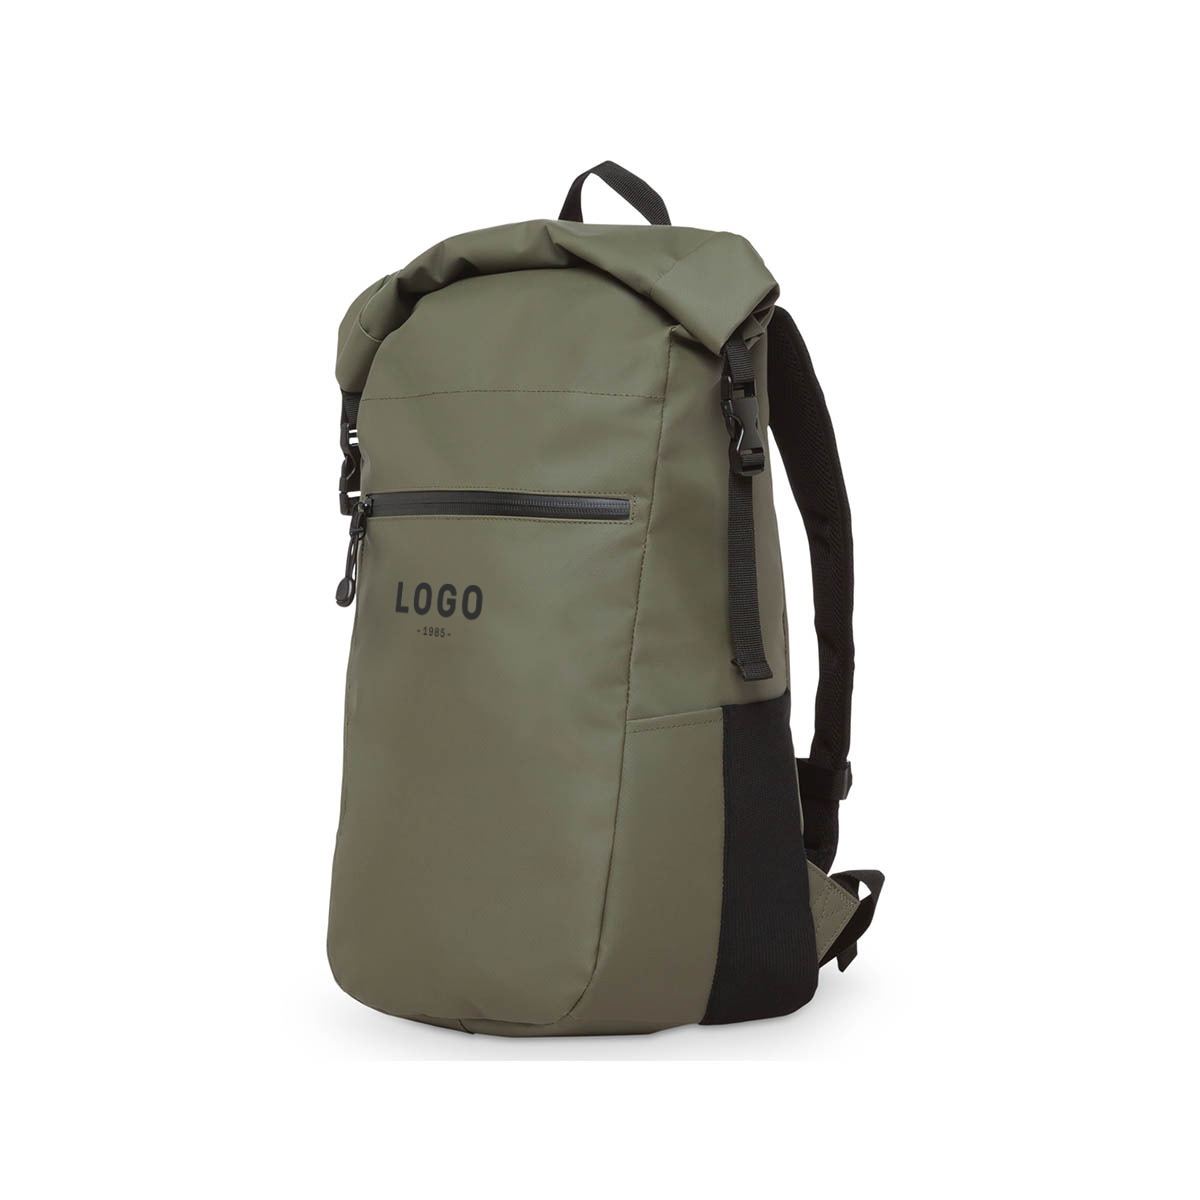 122713 forager backpack one color one location imprint